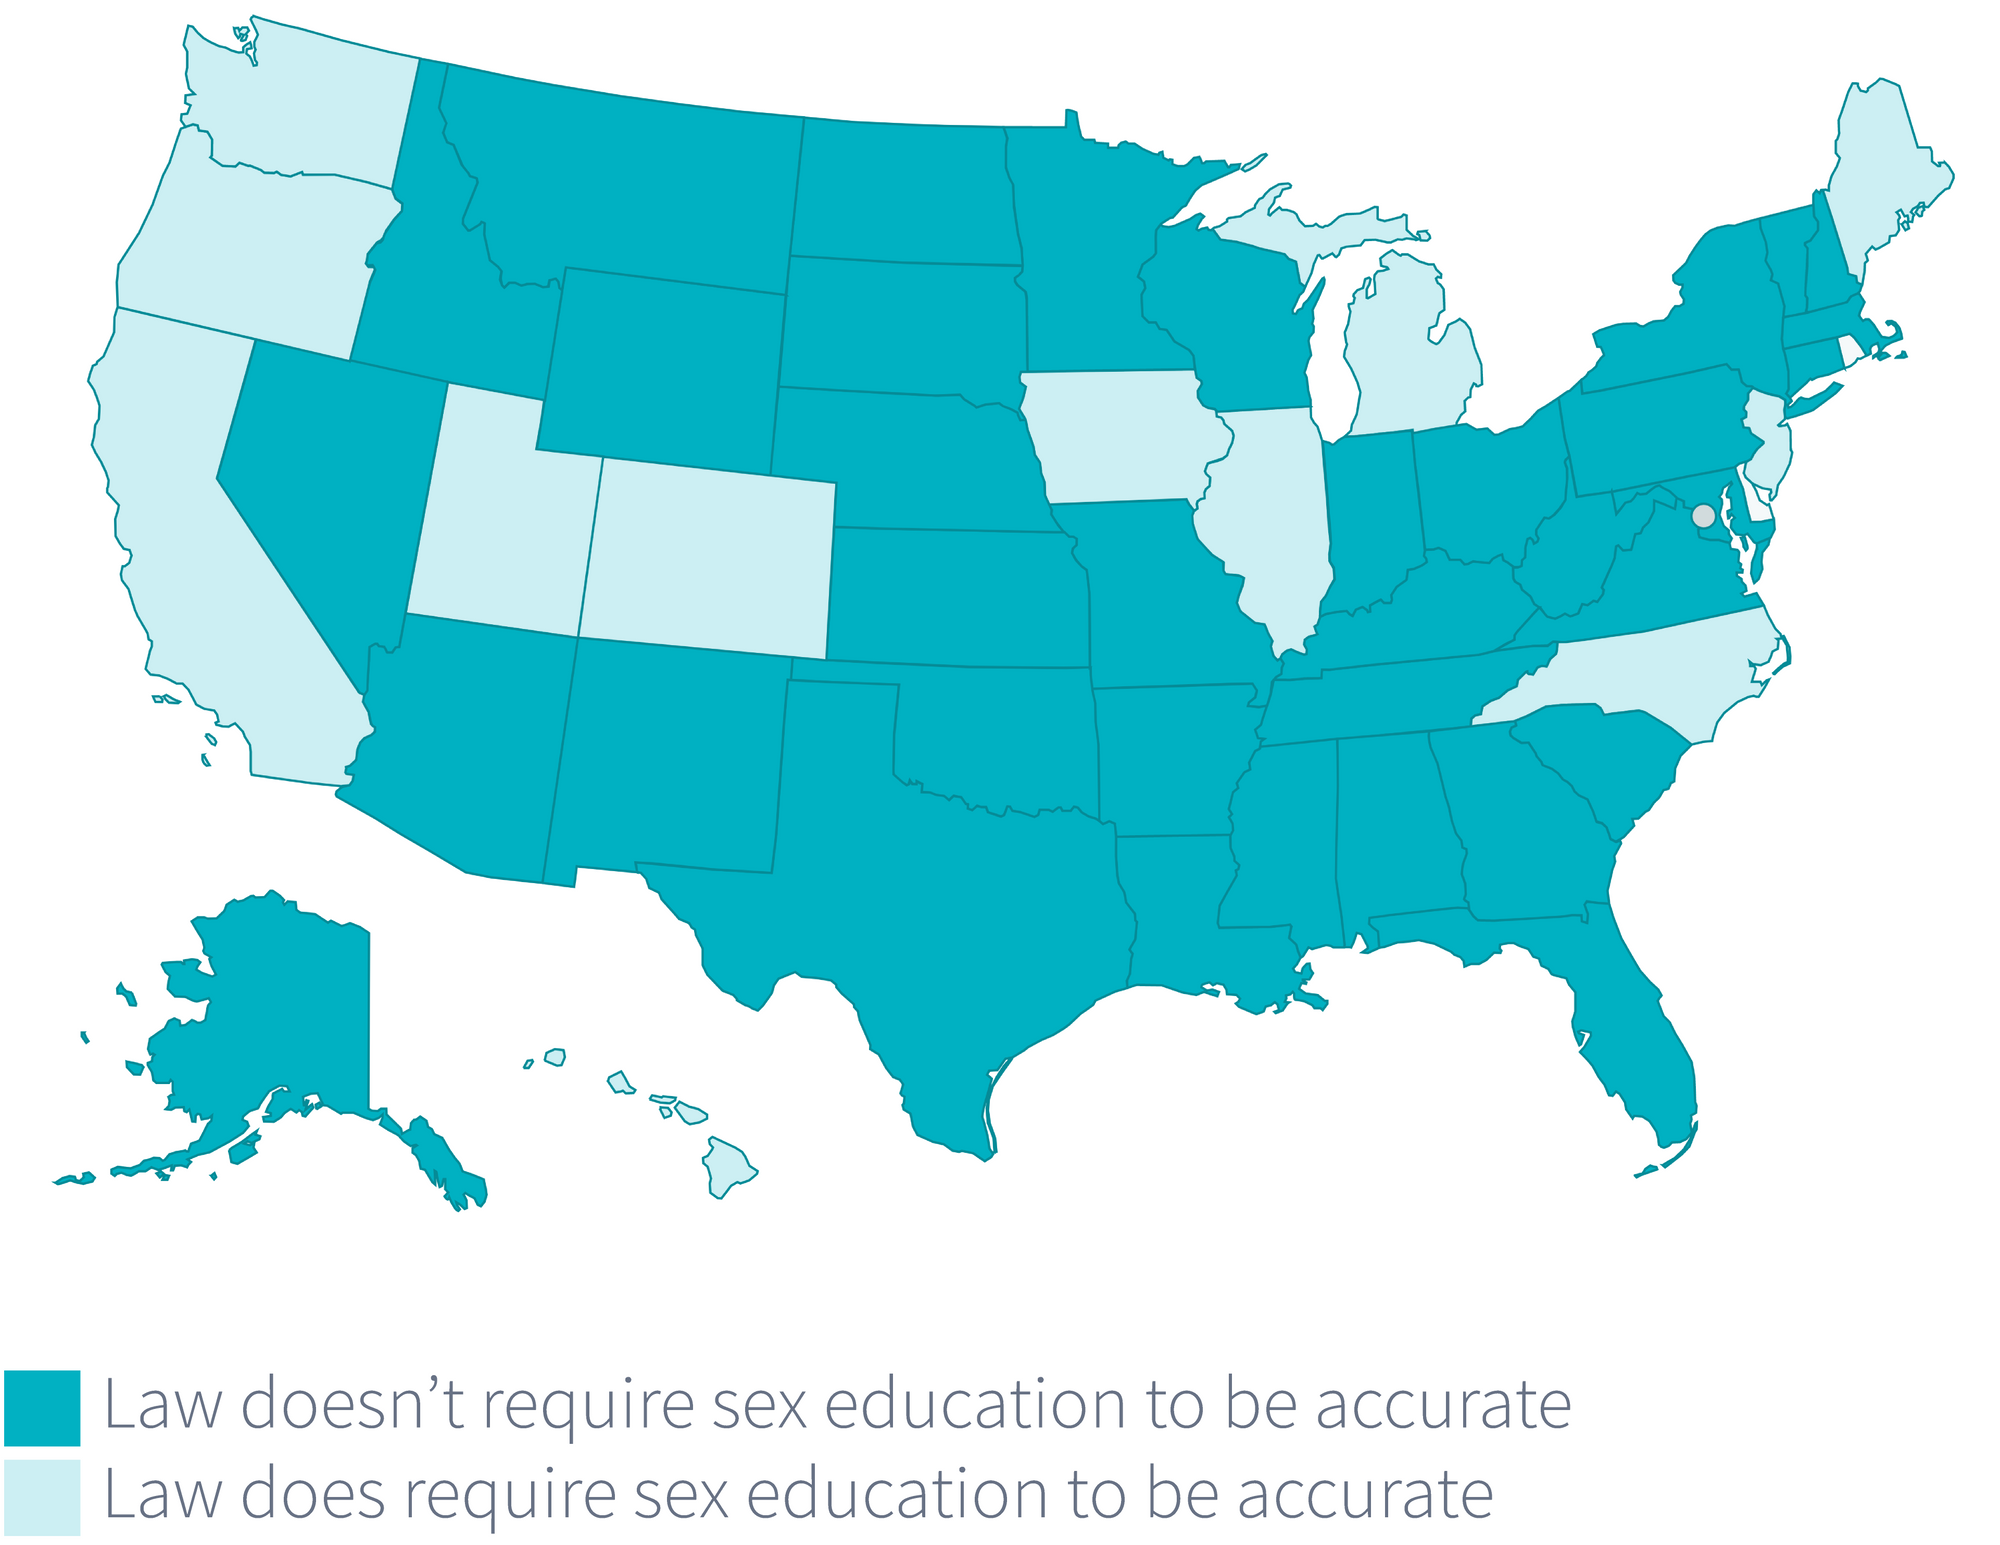 where-are-stds-most-common-by-sex-education-laws-in-the-u.s.